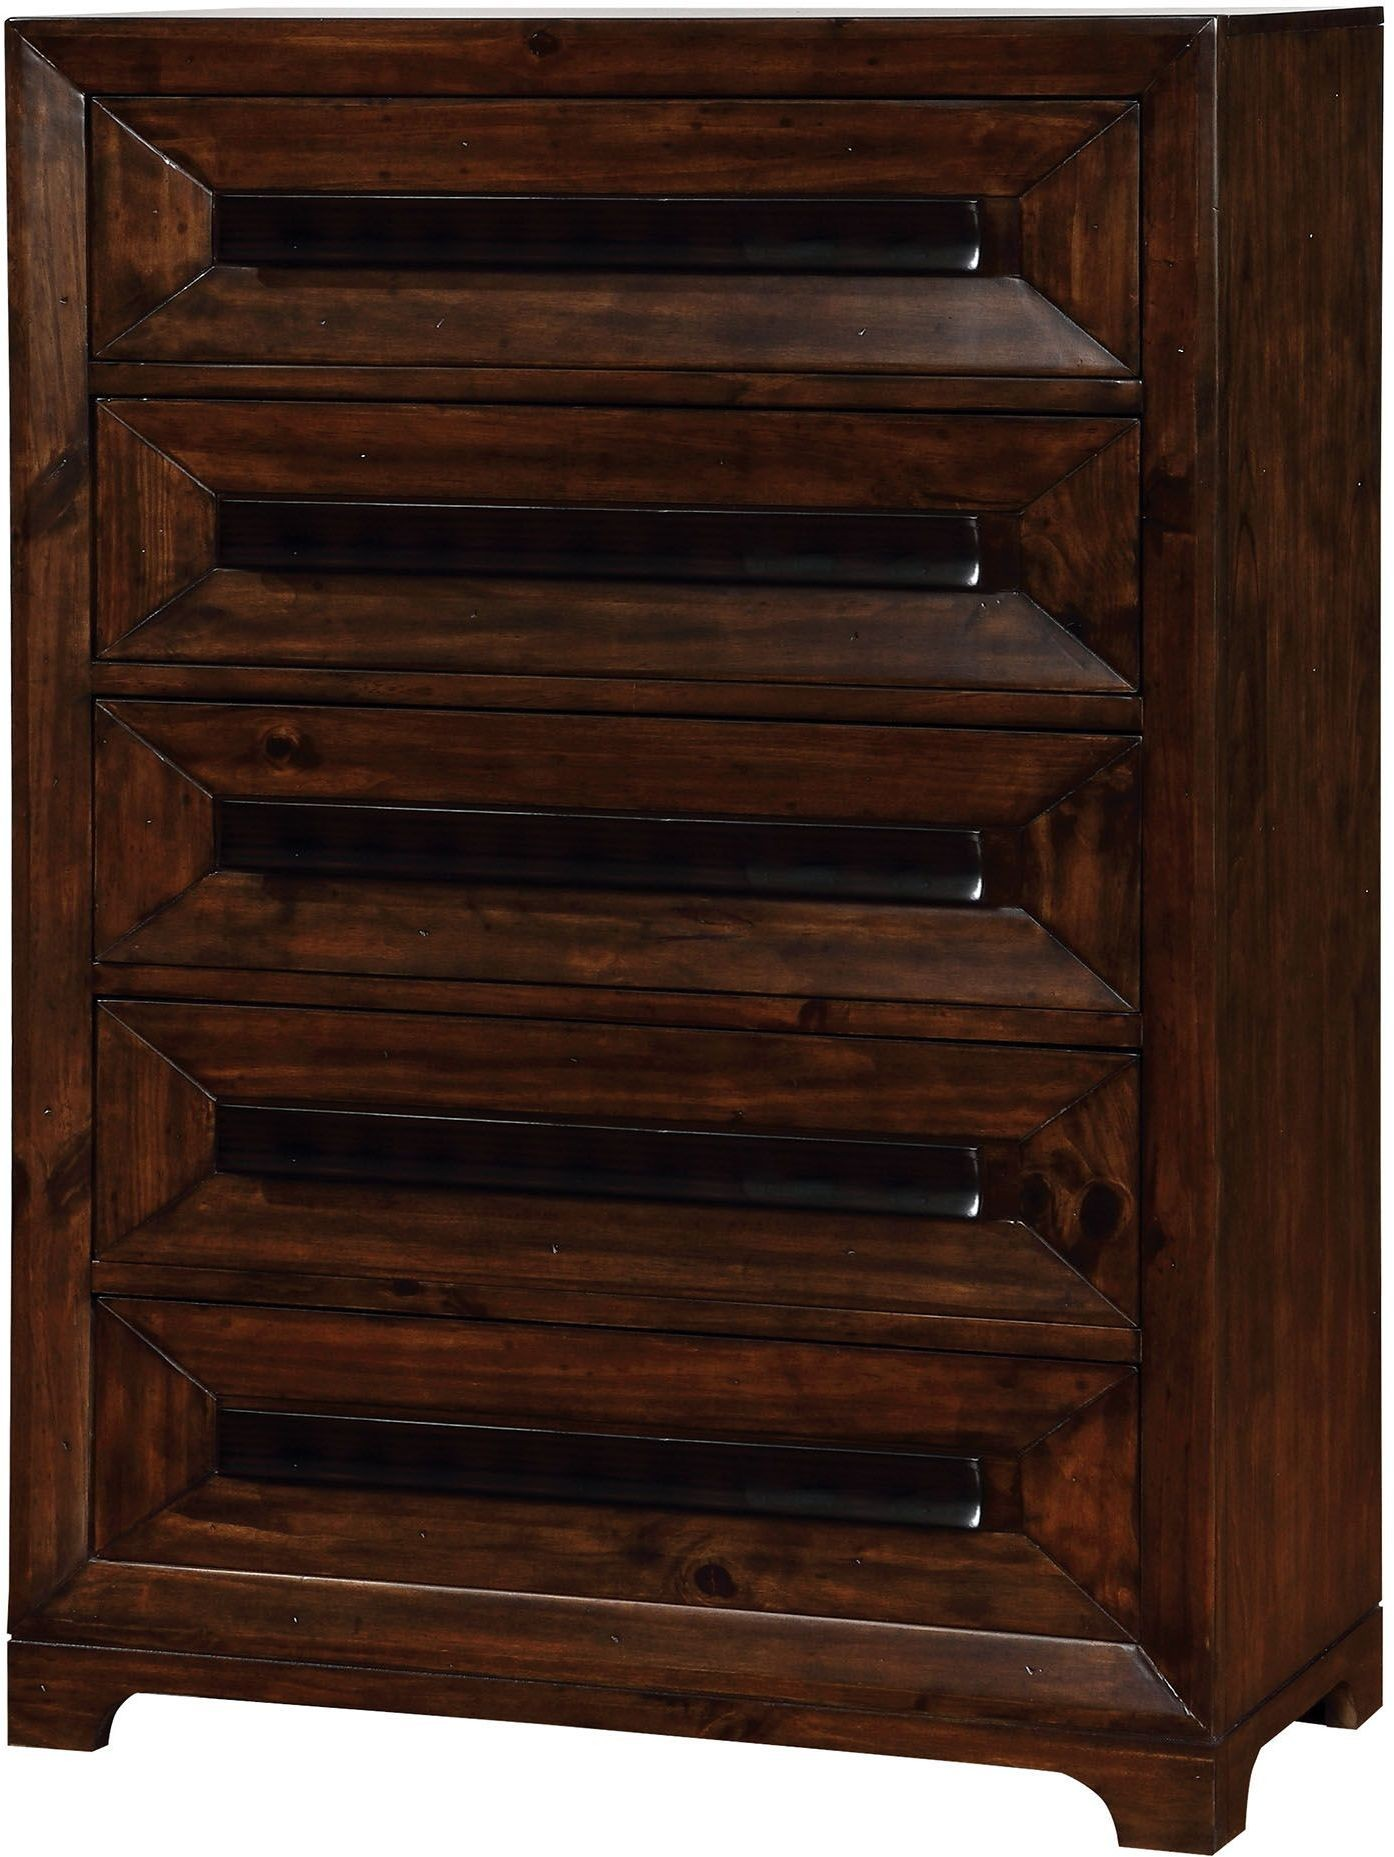 Orlaith walnut panel storage bedroom set cm7697q for American black walnut bedroom furniture